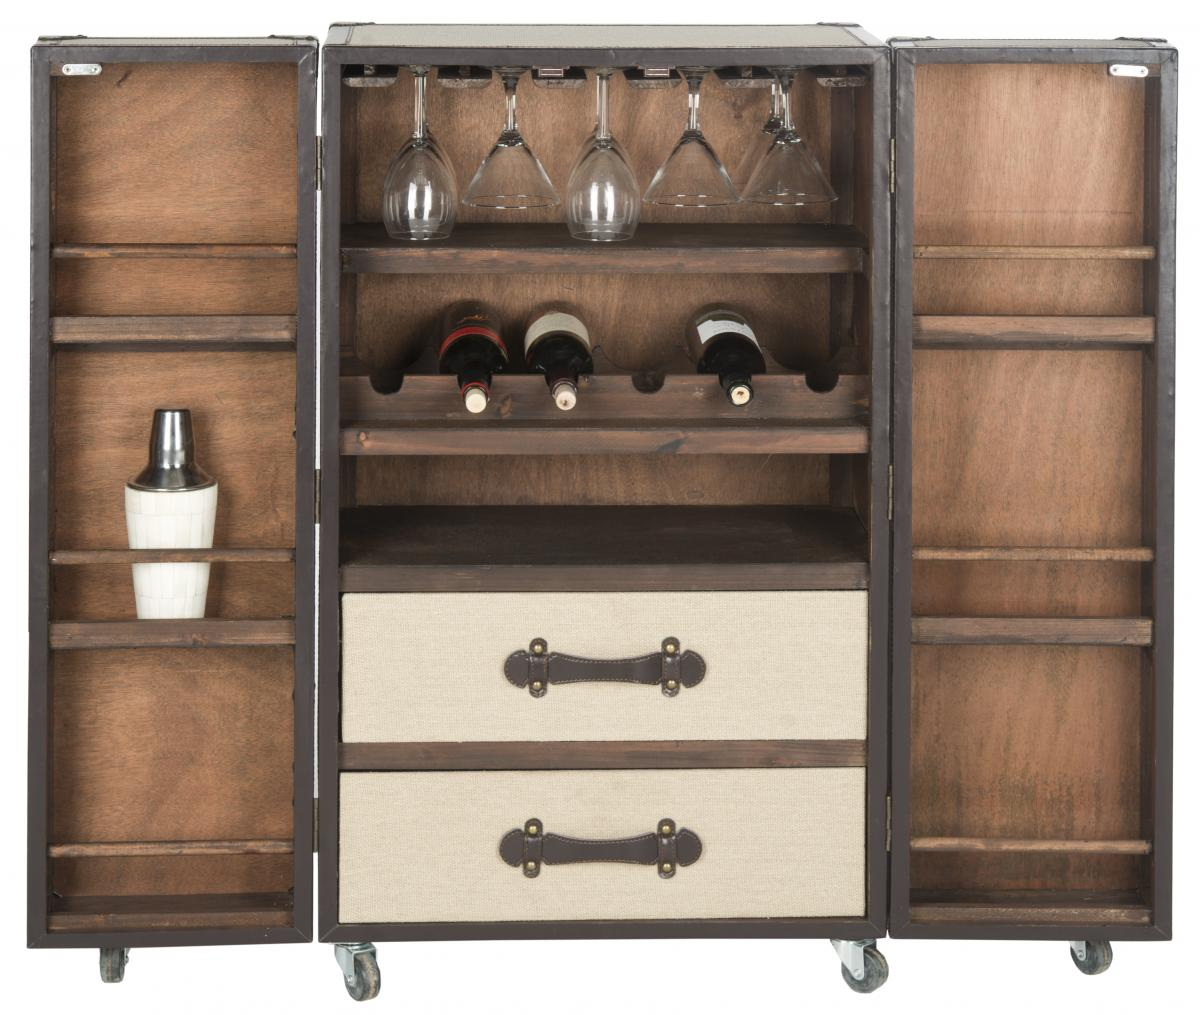 firenze with fundamentals fridge bottle bar spirits rocket proven hutch and uncle touchscreen refrigerator armoire liquor cabinet wine